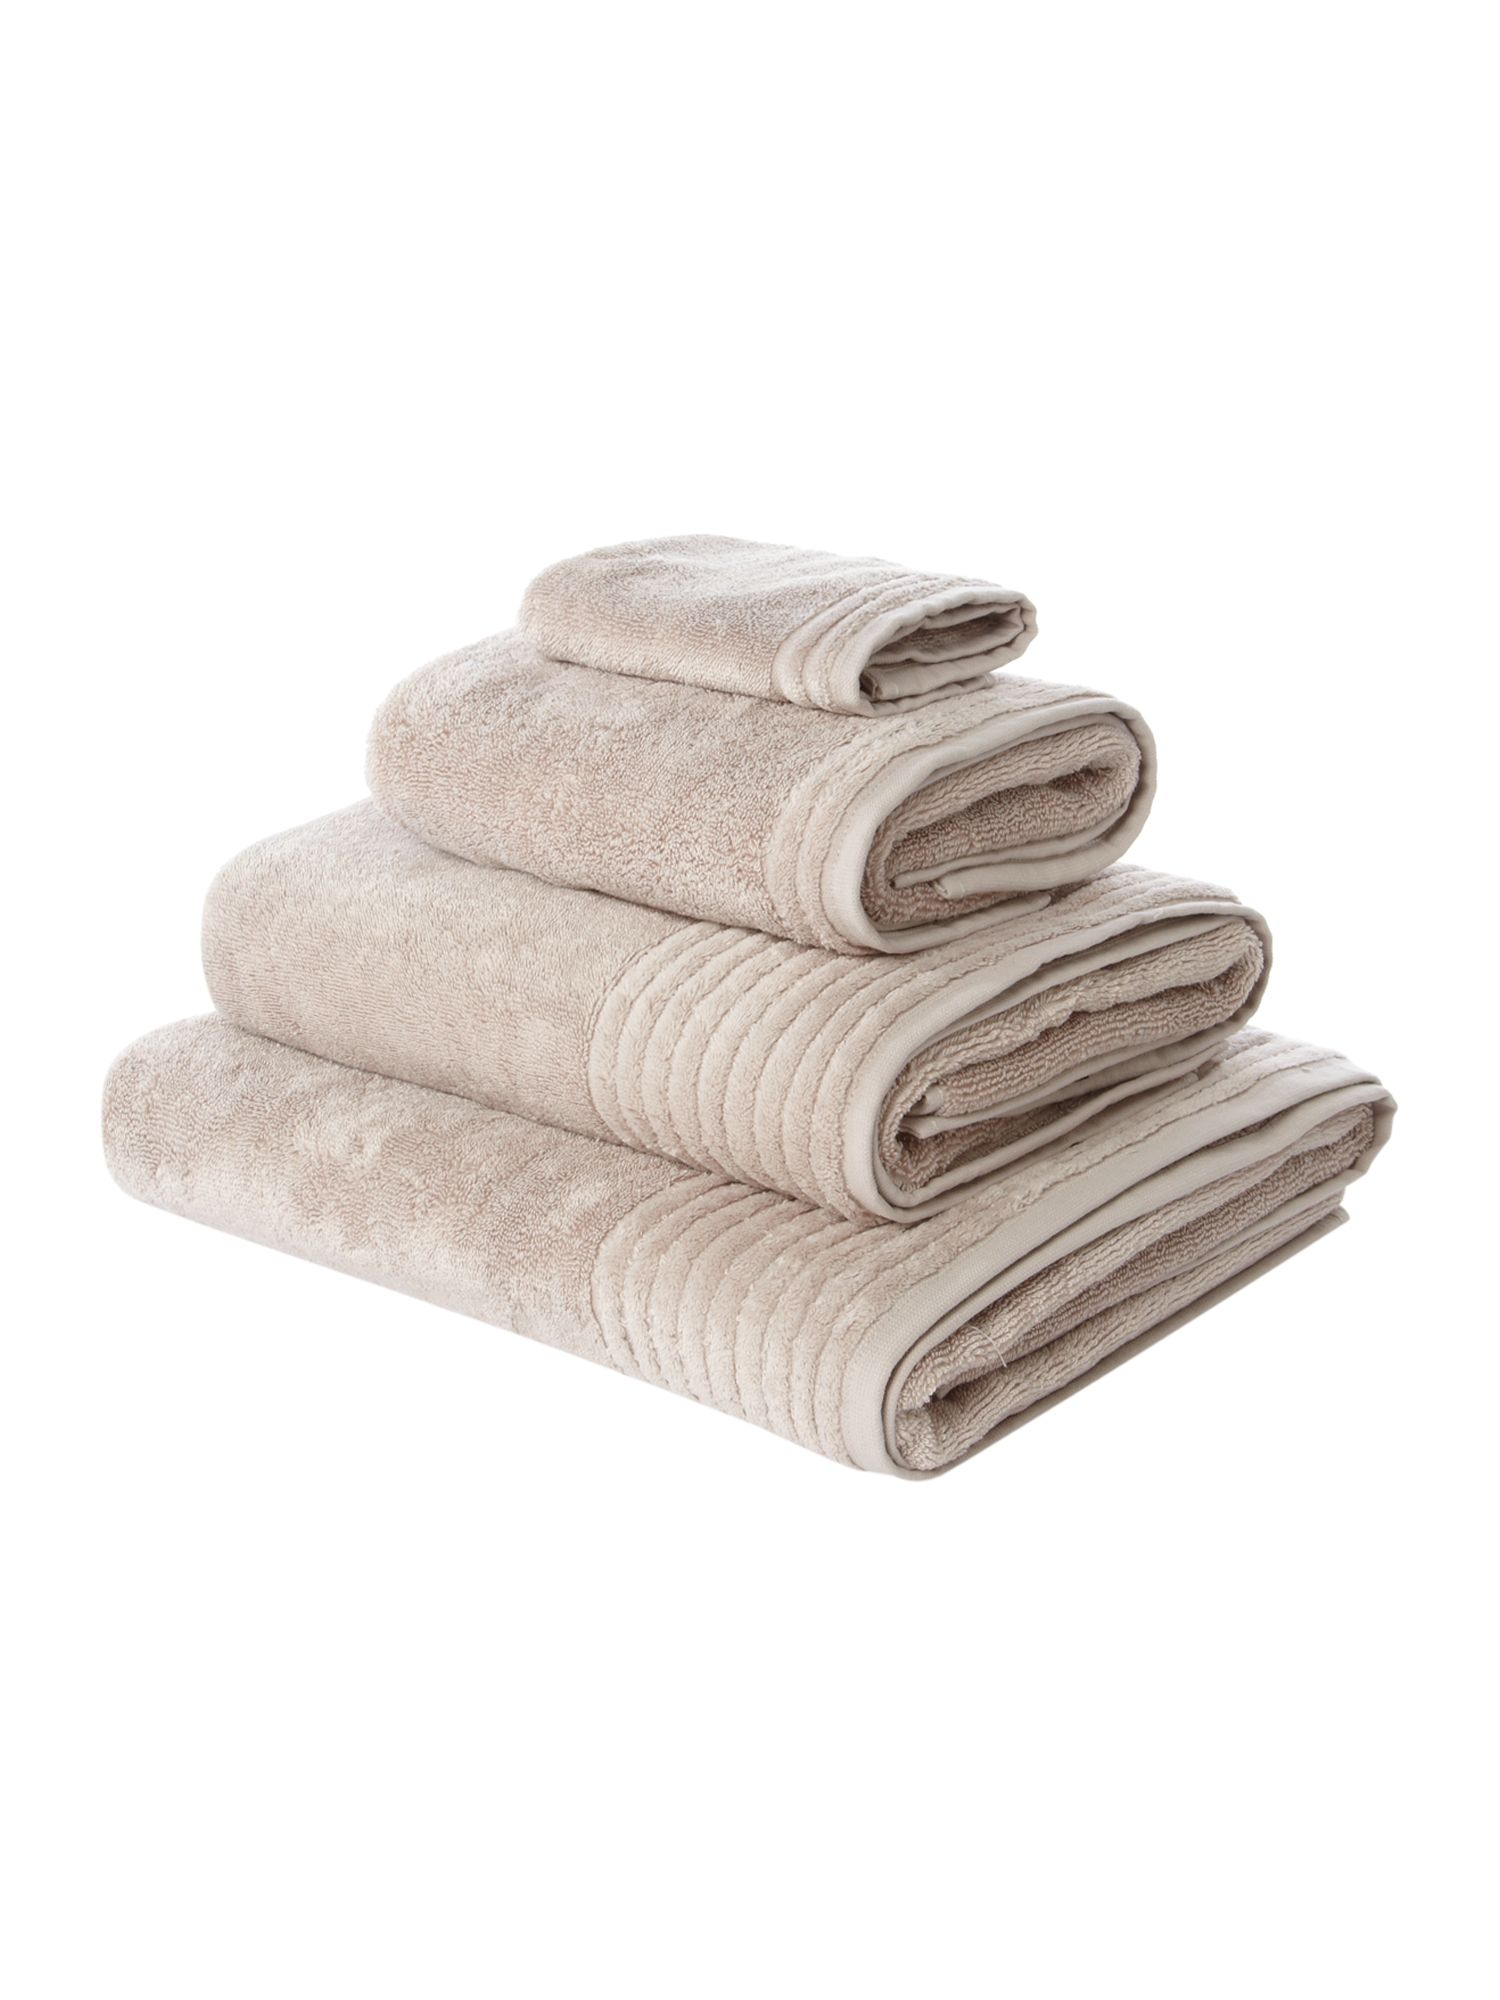 Spa supima cotton towels in oyster